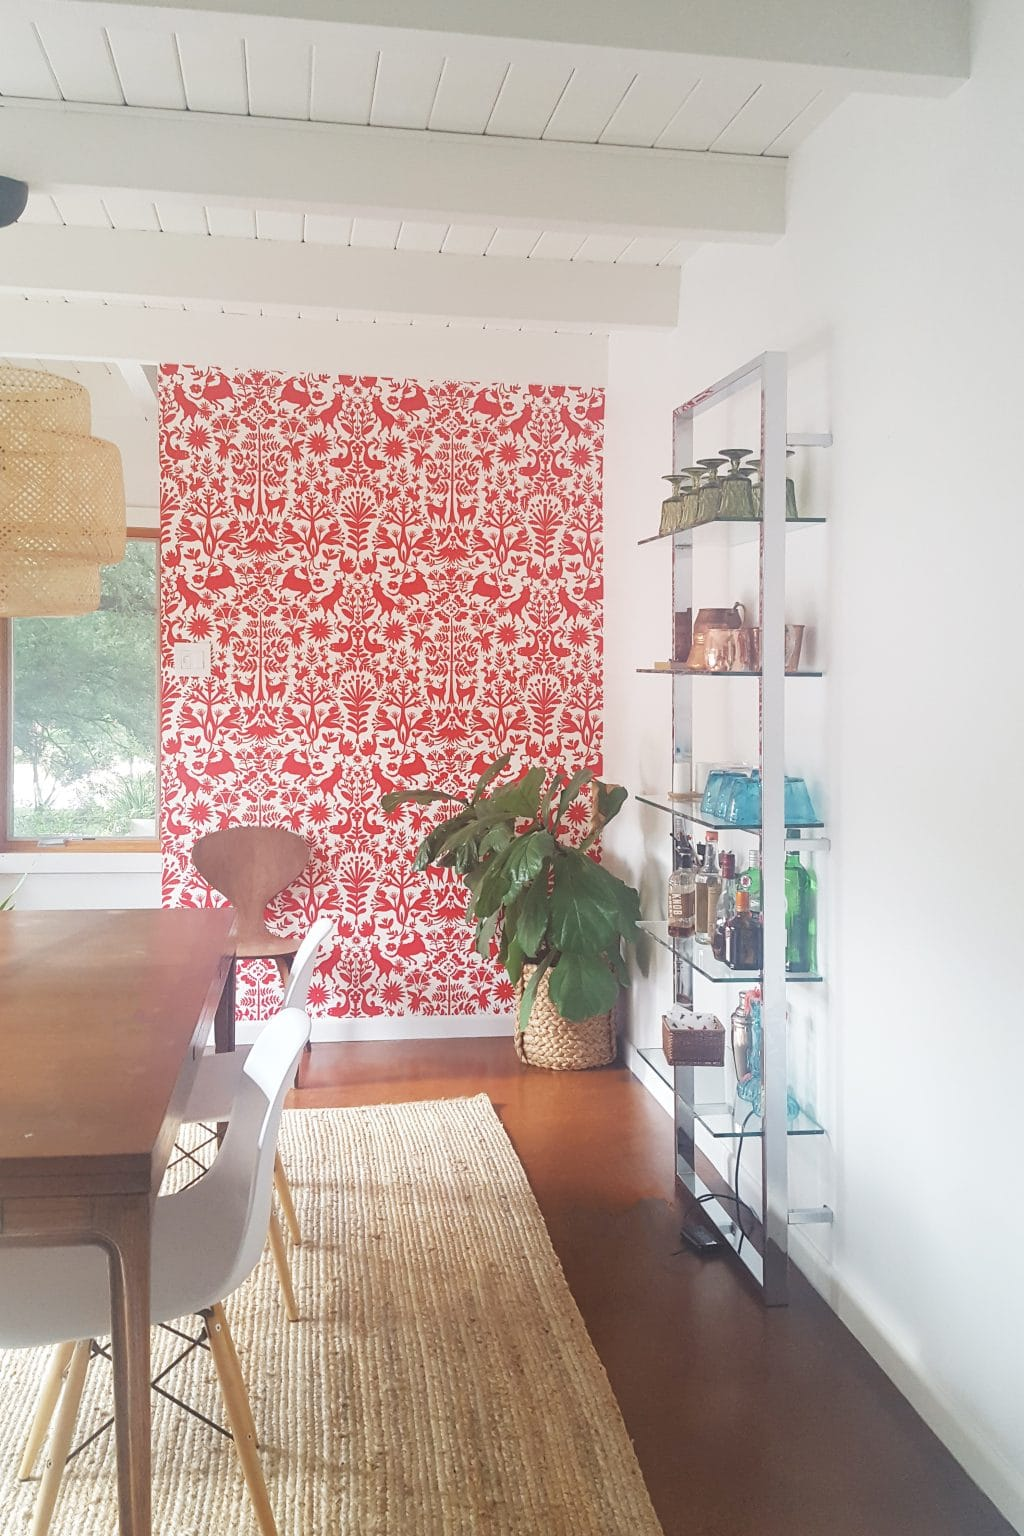 Wallpaper installation by Paper Moon Painting, San Antonio, red and white